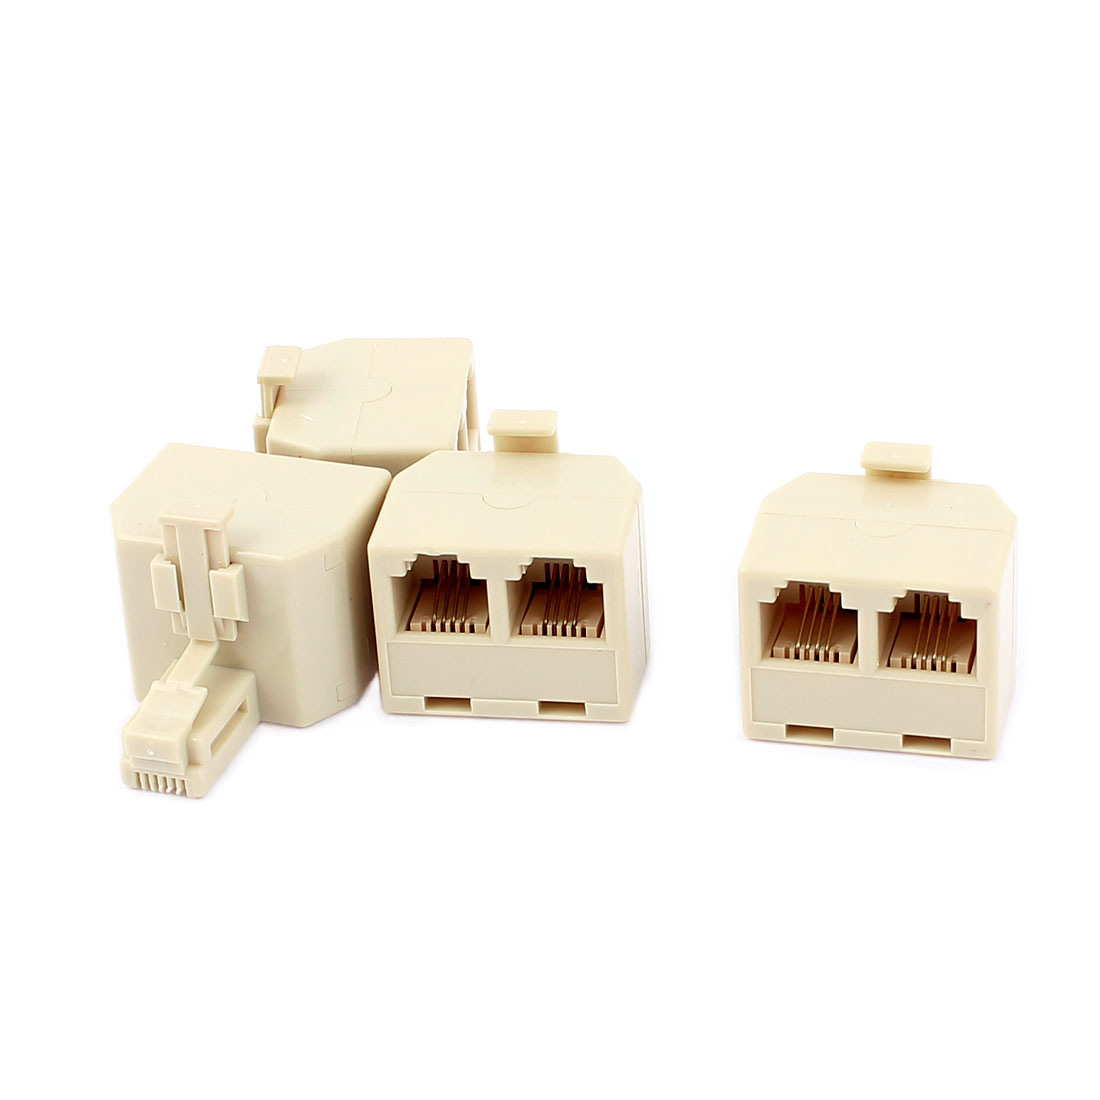 4Pcs Double 616E 4P4C RJ11 Female Telephone Network Connector Adapter